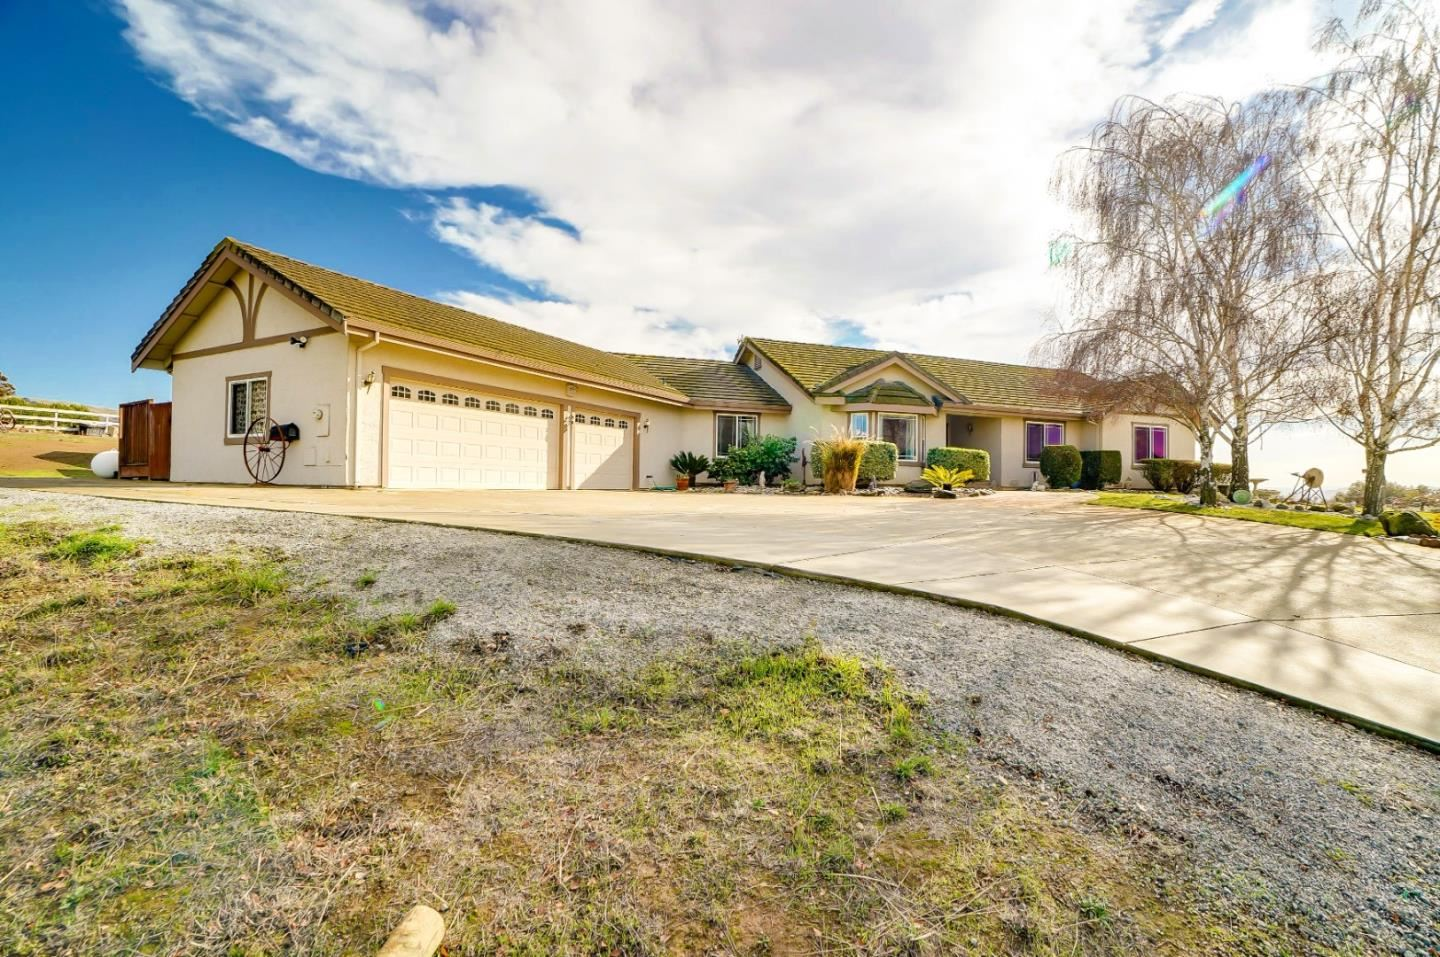 Photo for 2950 Bannister AVE, GILROY, CA 95020 (MLS # ML81824966)